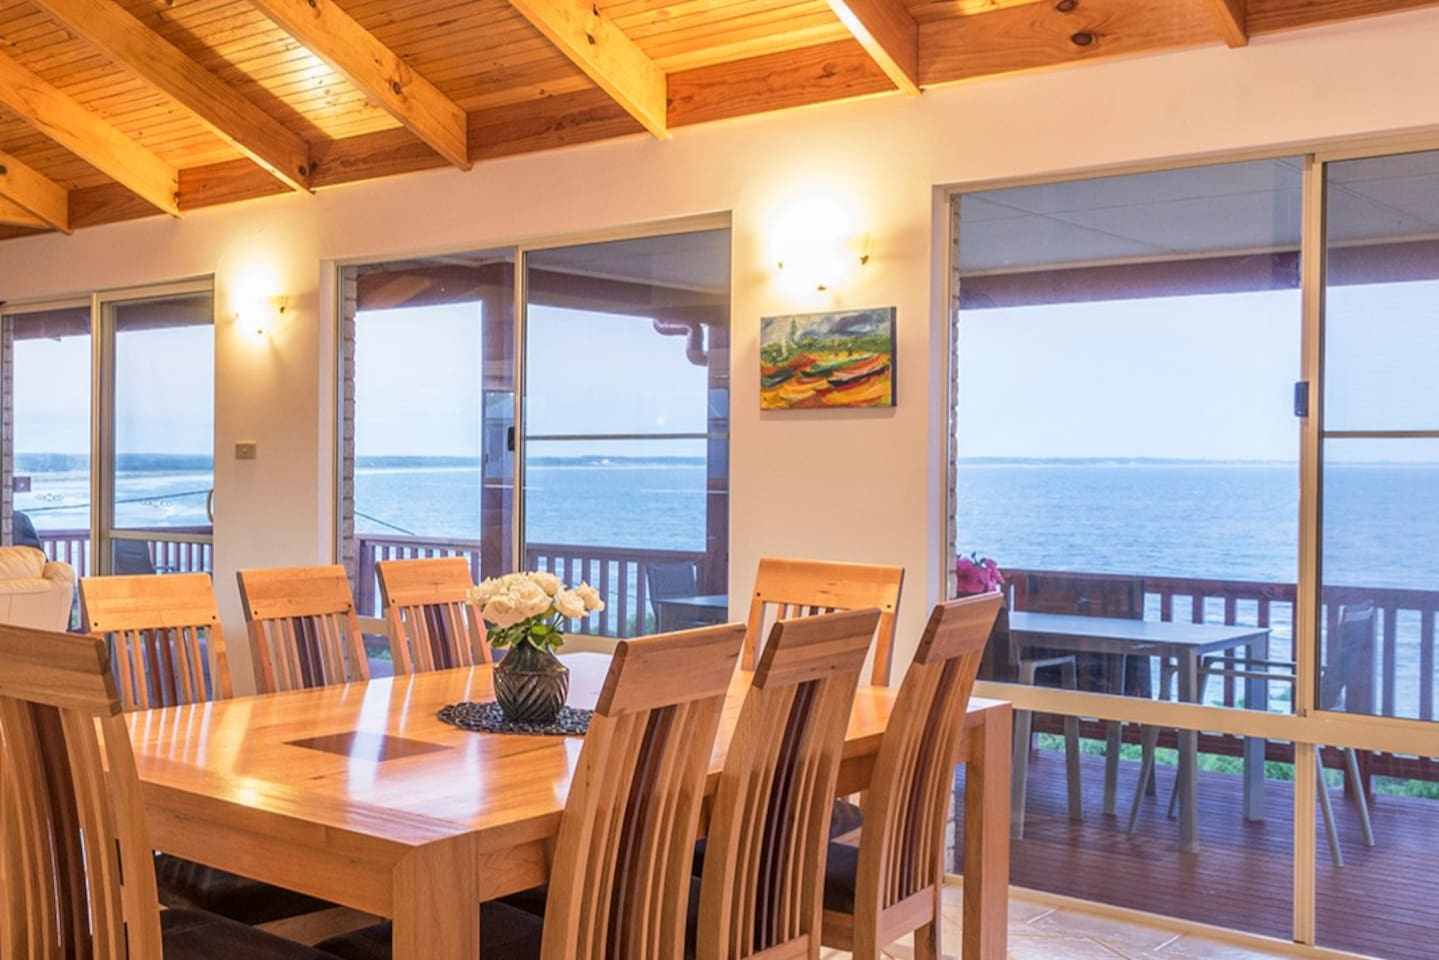 180-degree ocean views from the upstairs living area and deck.